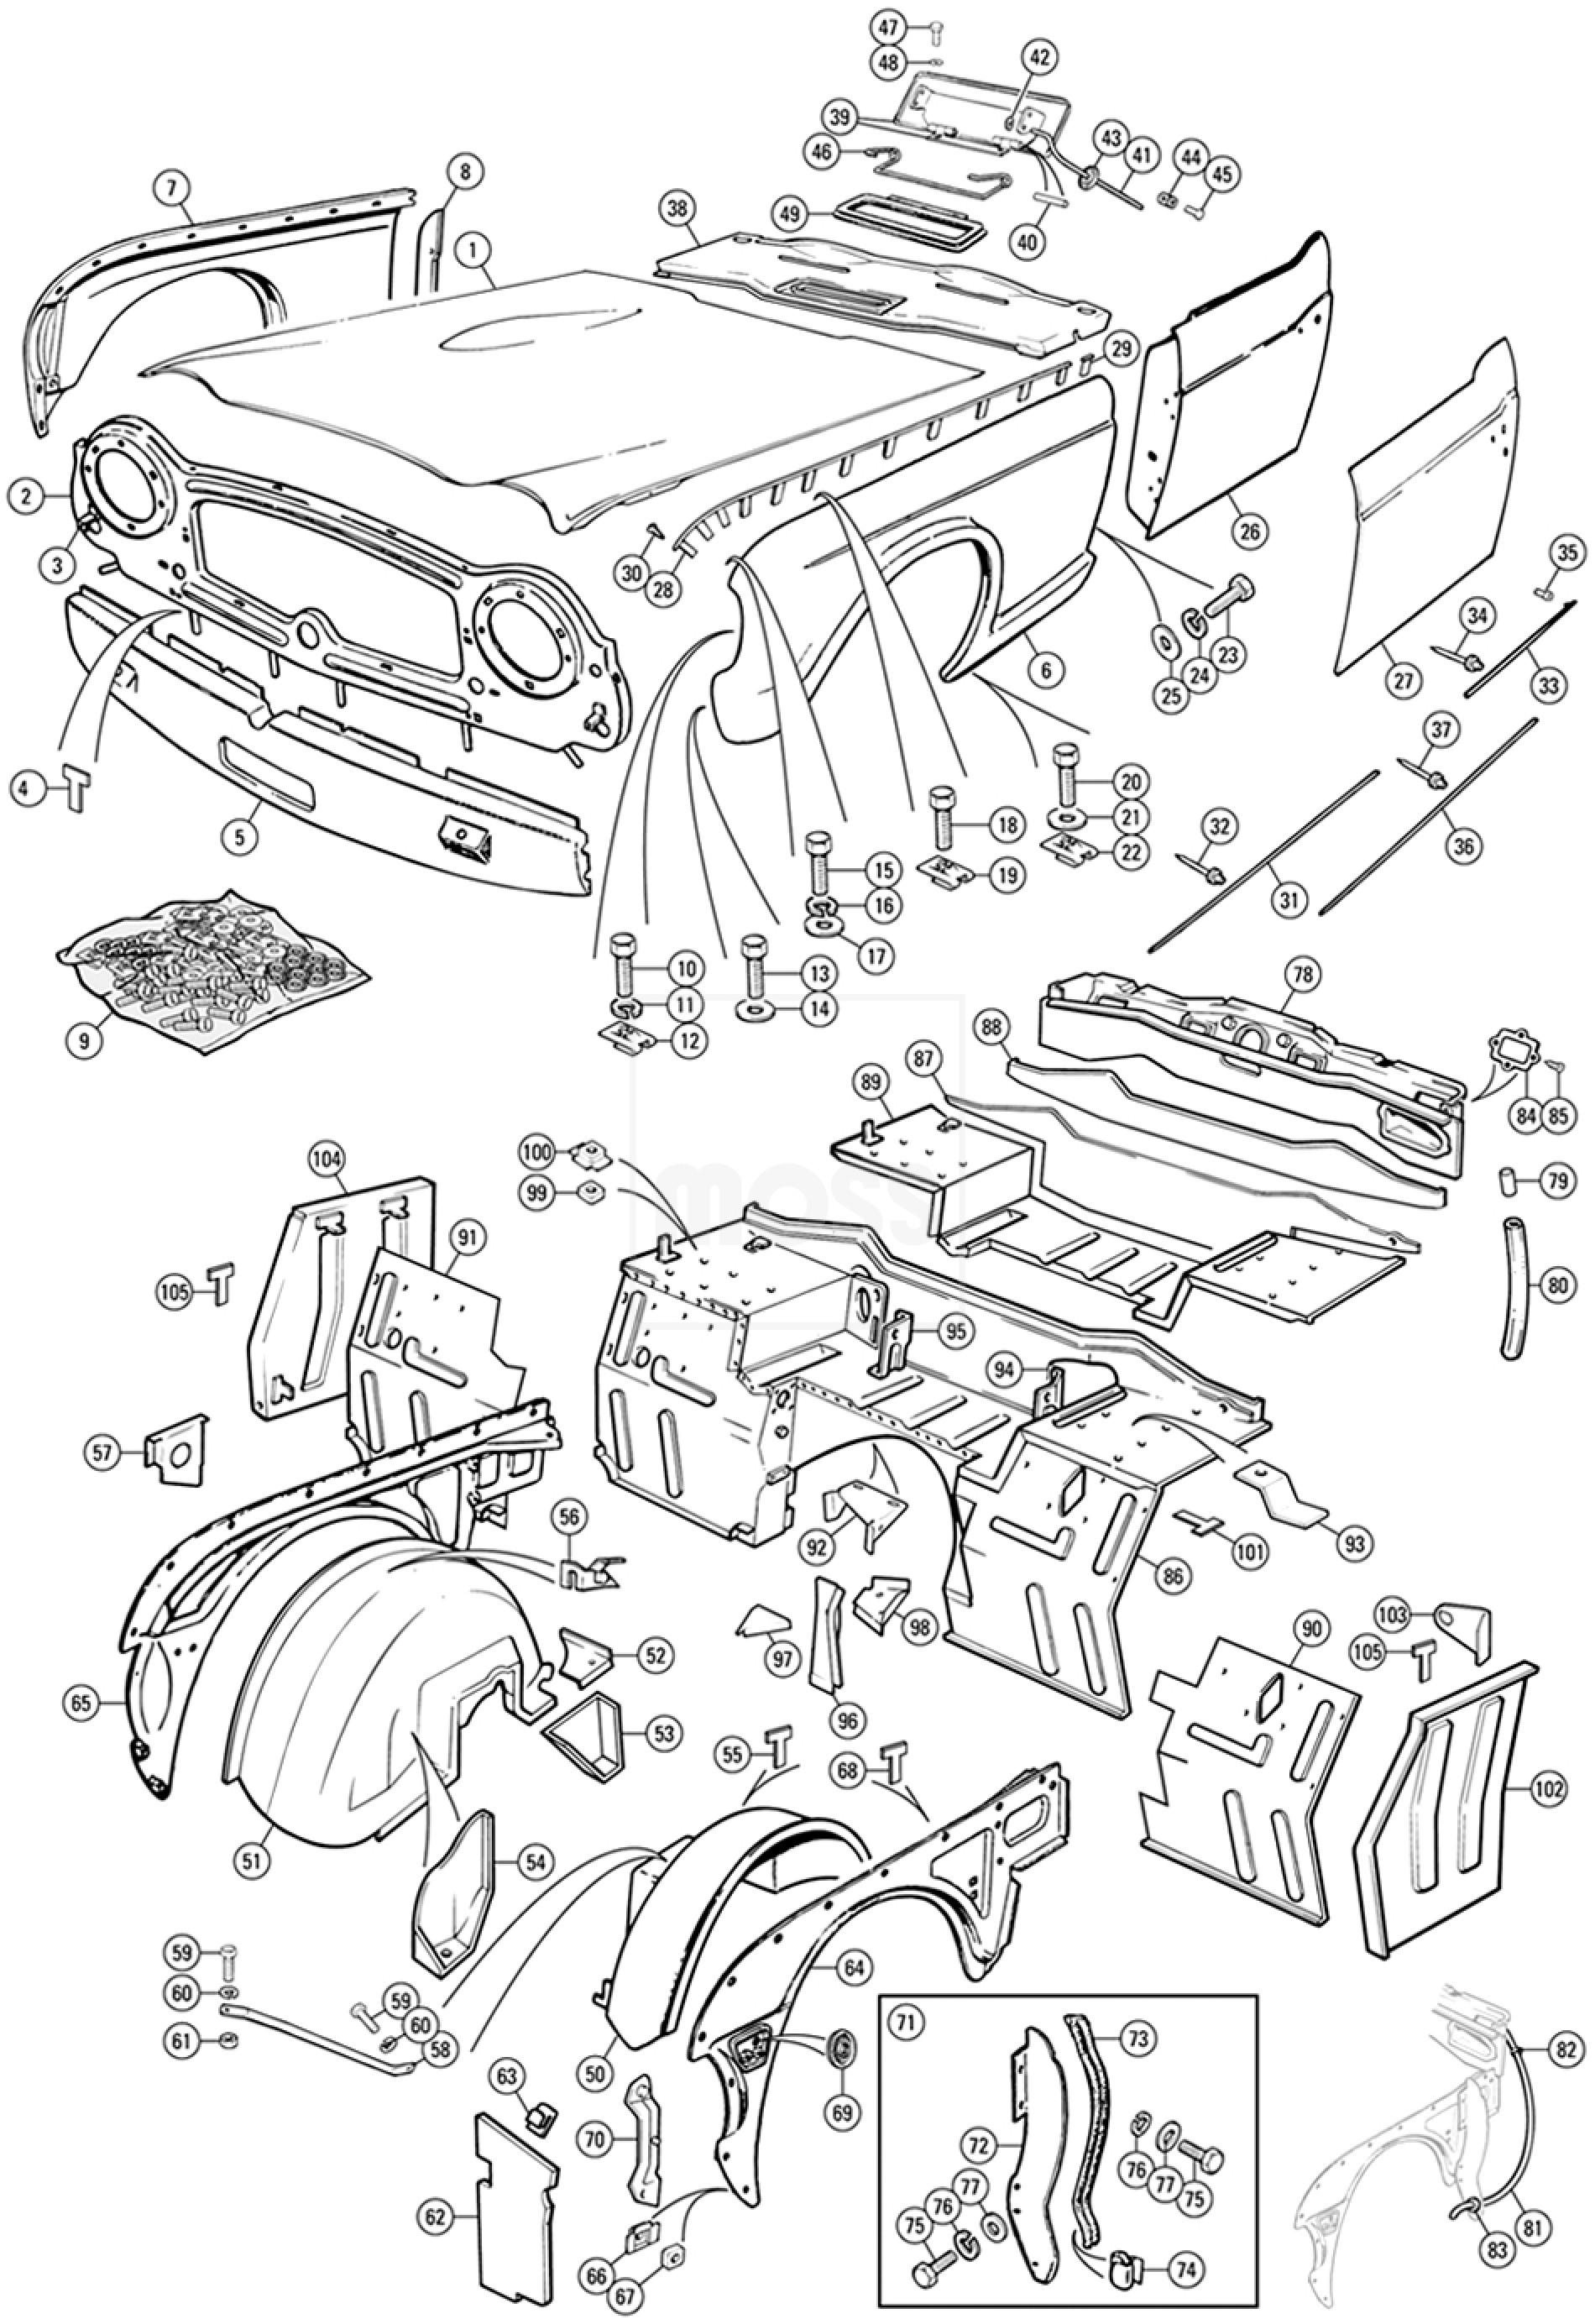 Sujet391725 2555 moreover Buick Lacrosse 2 4 2002 Specs And Images as well Fuse Panel Diagram Gmc Wiring Schemes moreover 1996 Buick Roadmaster Timing Cover Gasket Replacement together with Diagrsm 1999 Buick Regal Fuse Box. on 85 buick park avenue